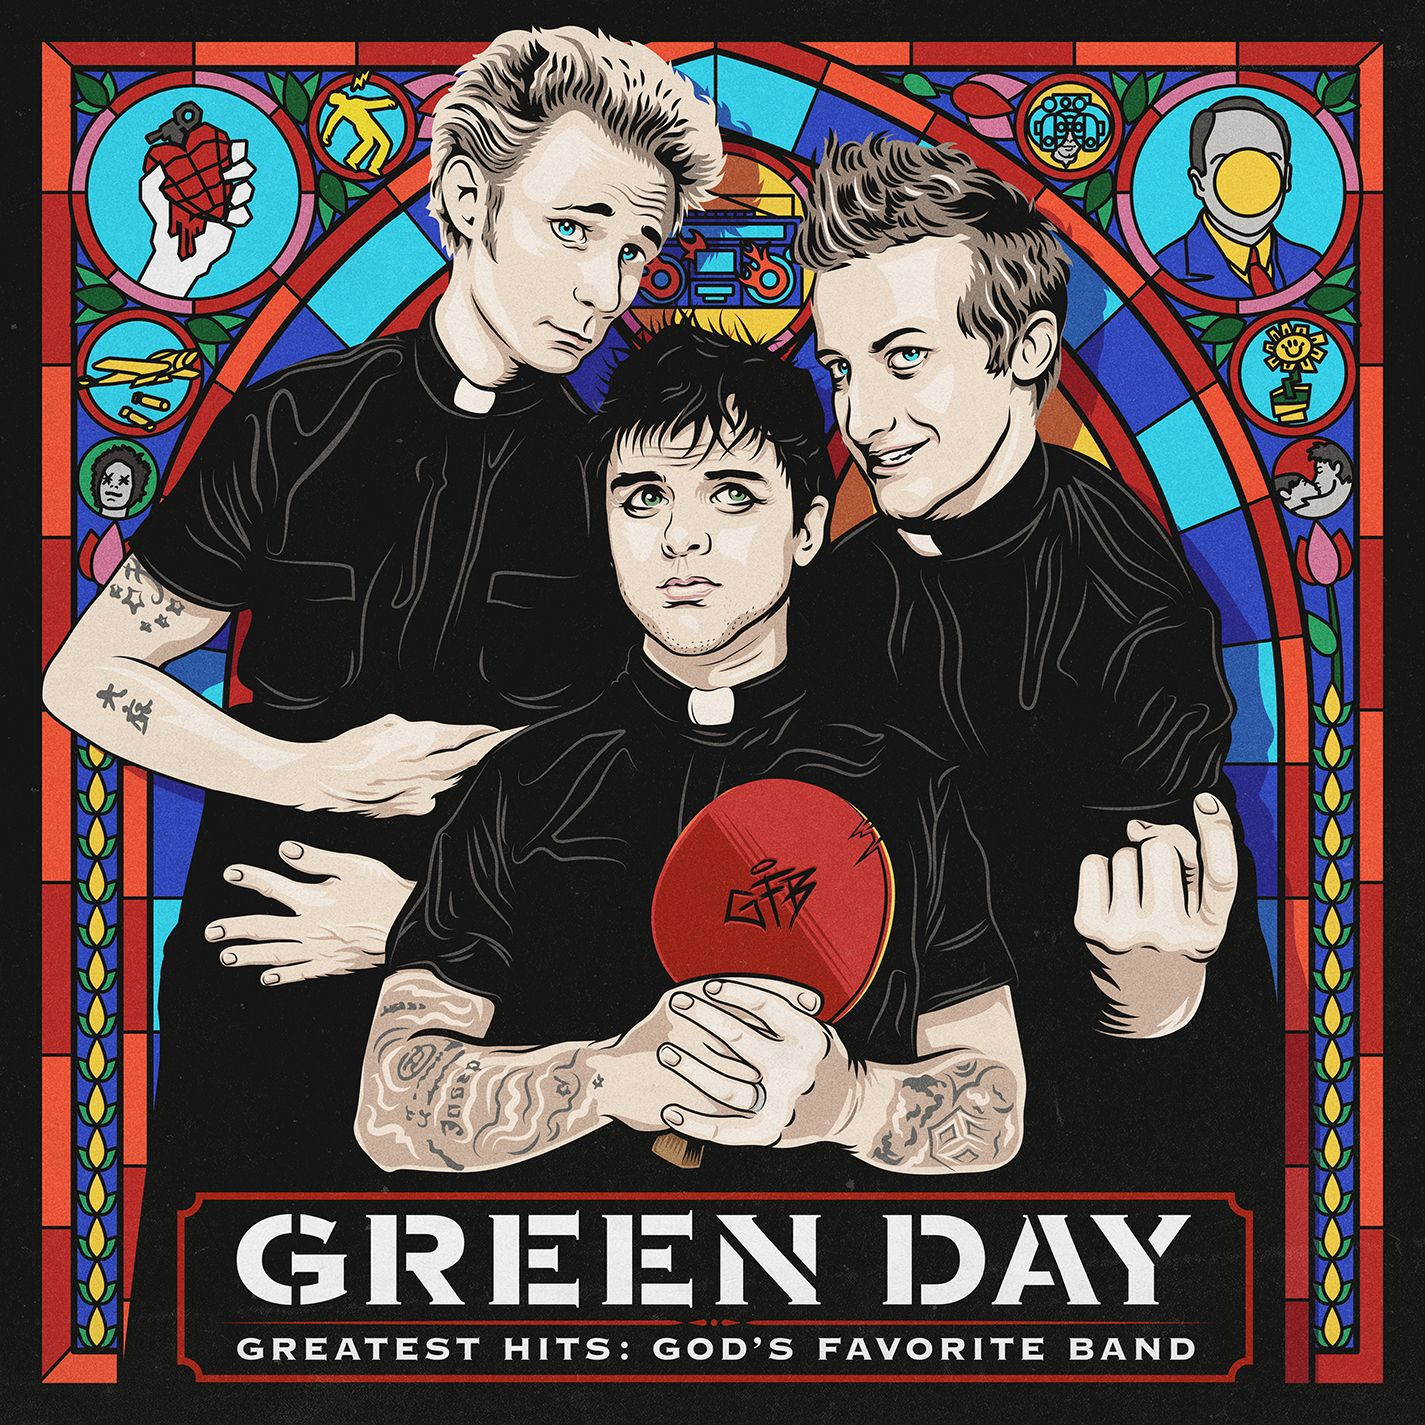 Green Day - Greatest Hits - God's Favorite Band album cover